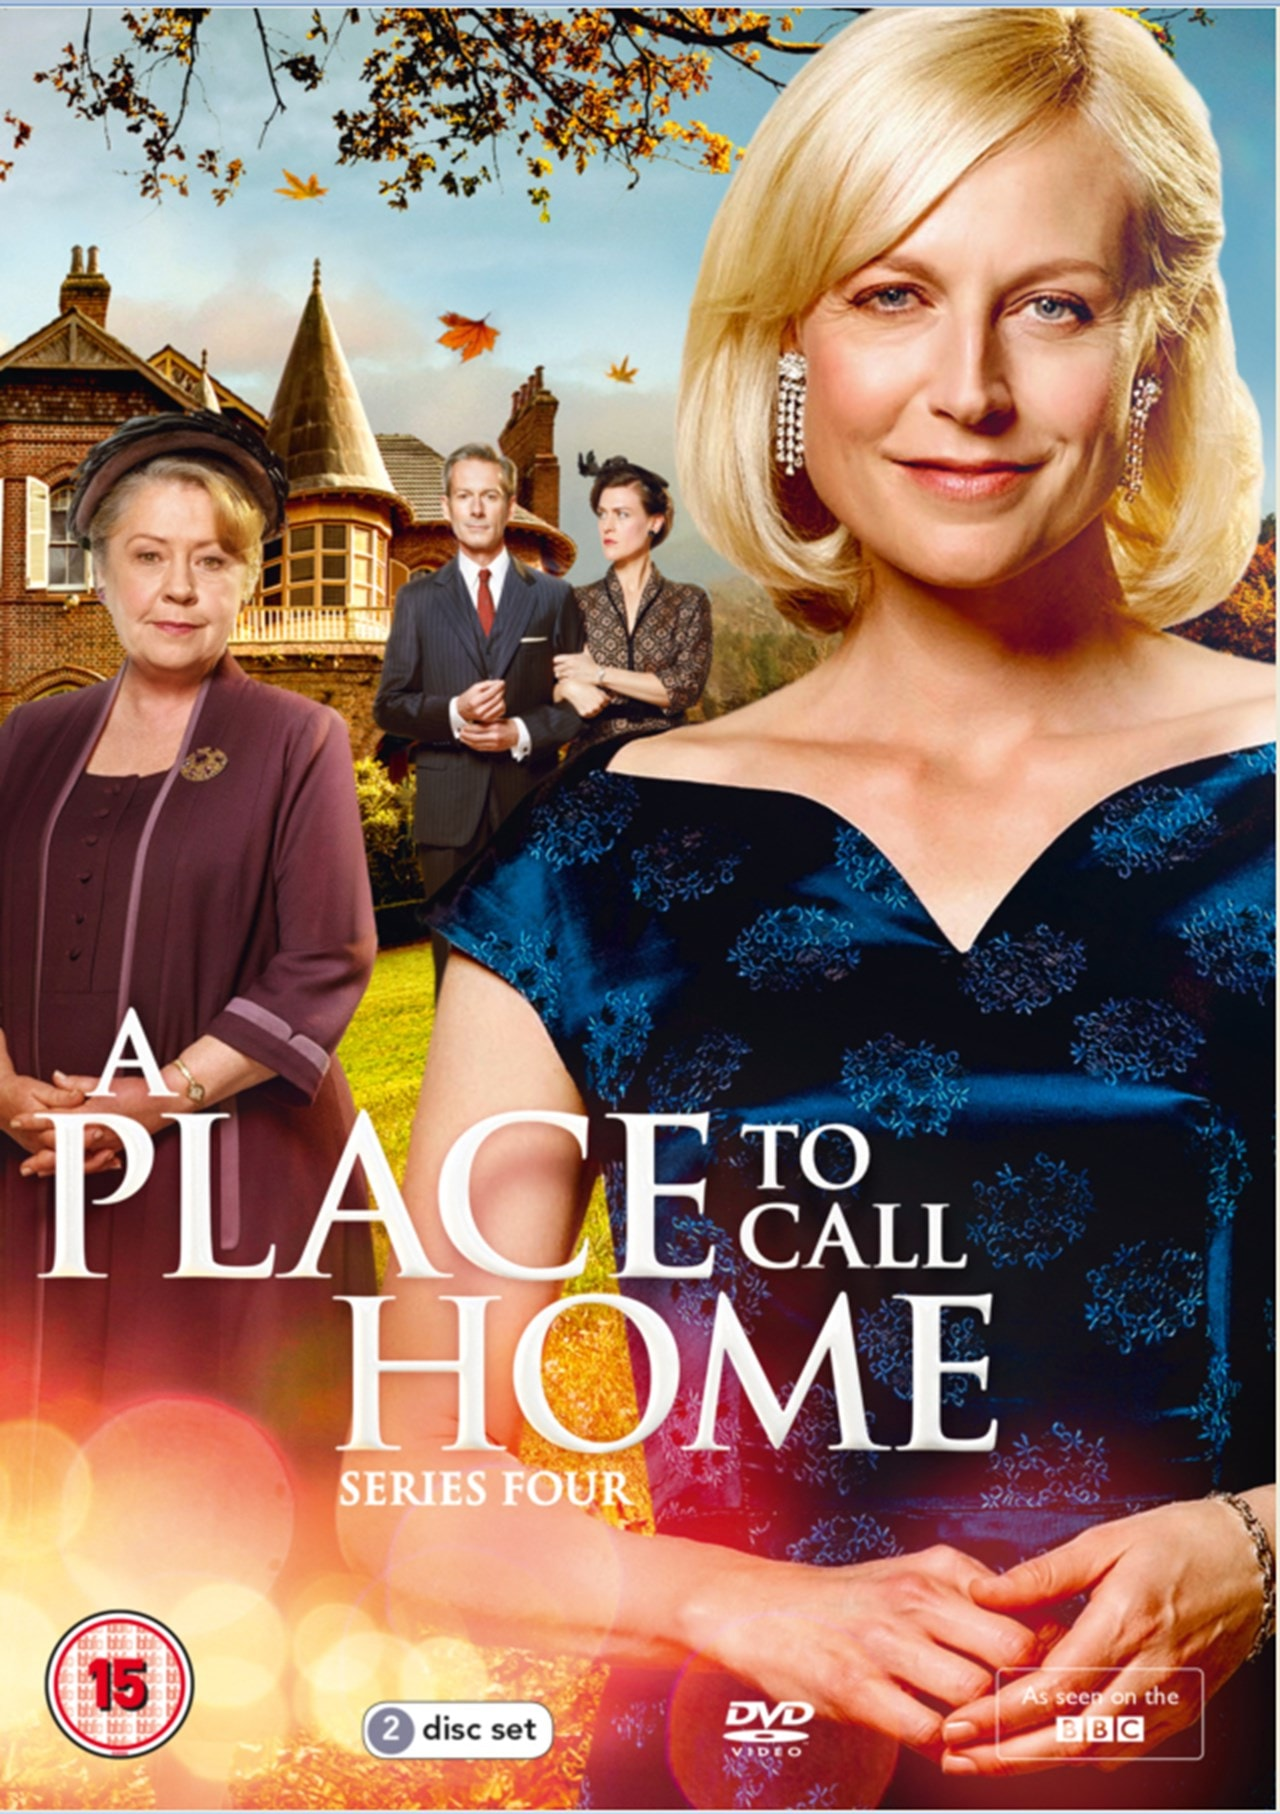 A Place to Call Home: Series Four - 1